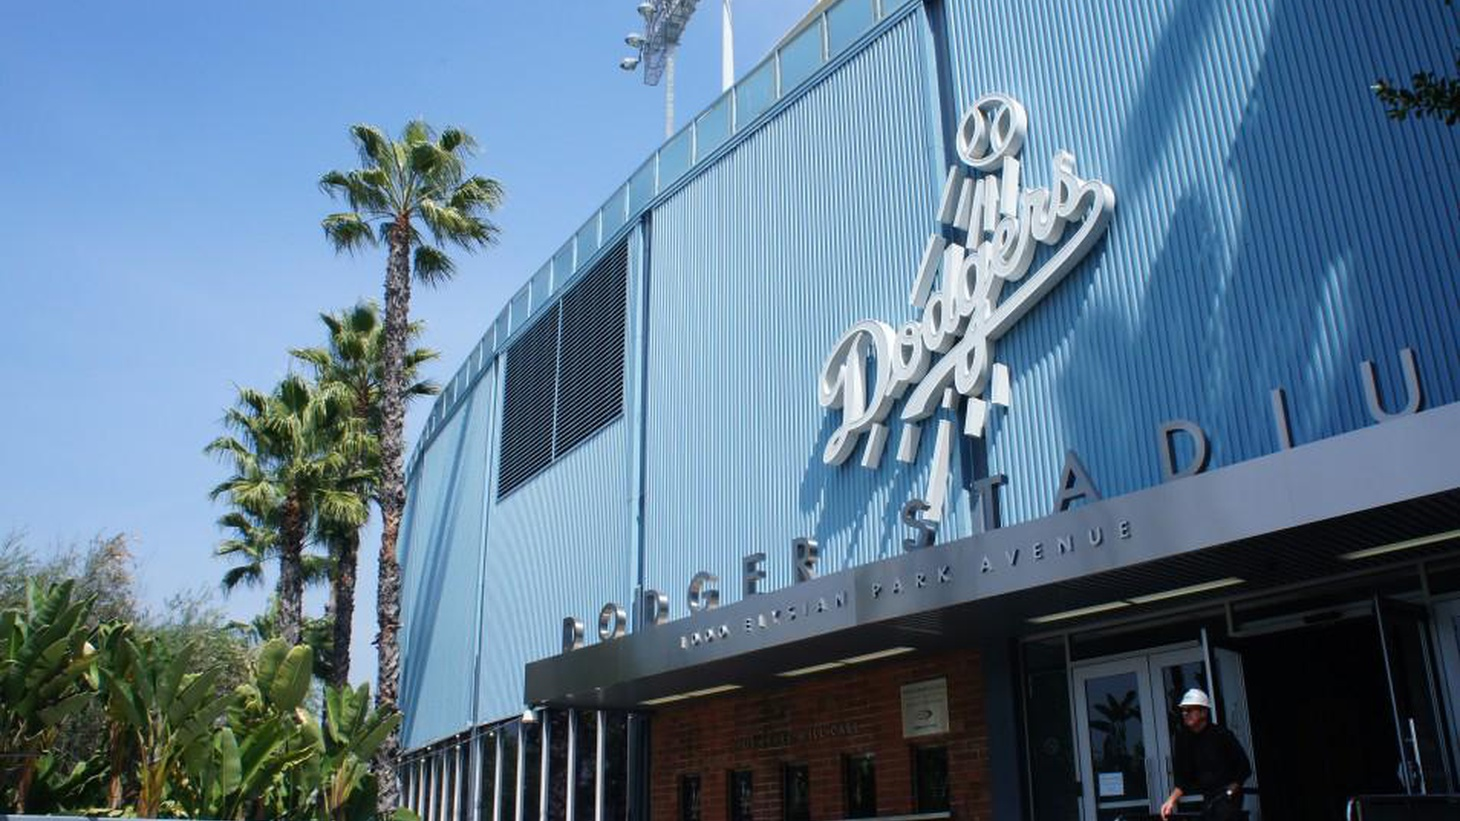 The Dodgers have overtaken the Yankees with a payroll of $230 million. We get a preview of the upcoming season and the new look at a renovated Dodger Stadium.